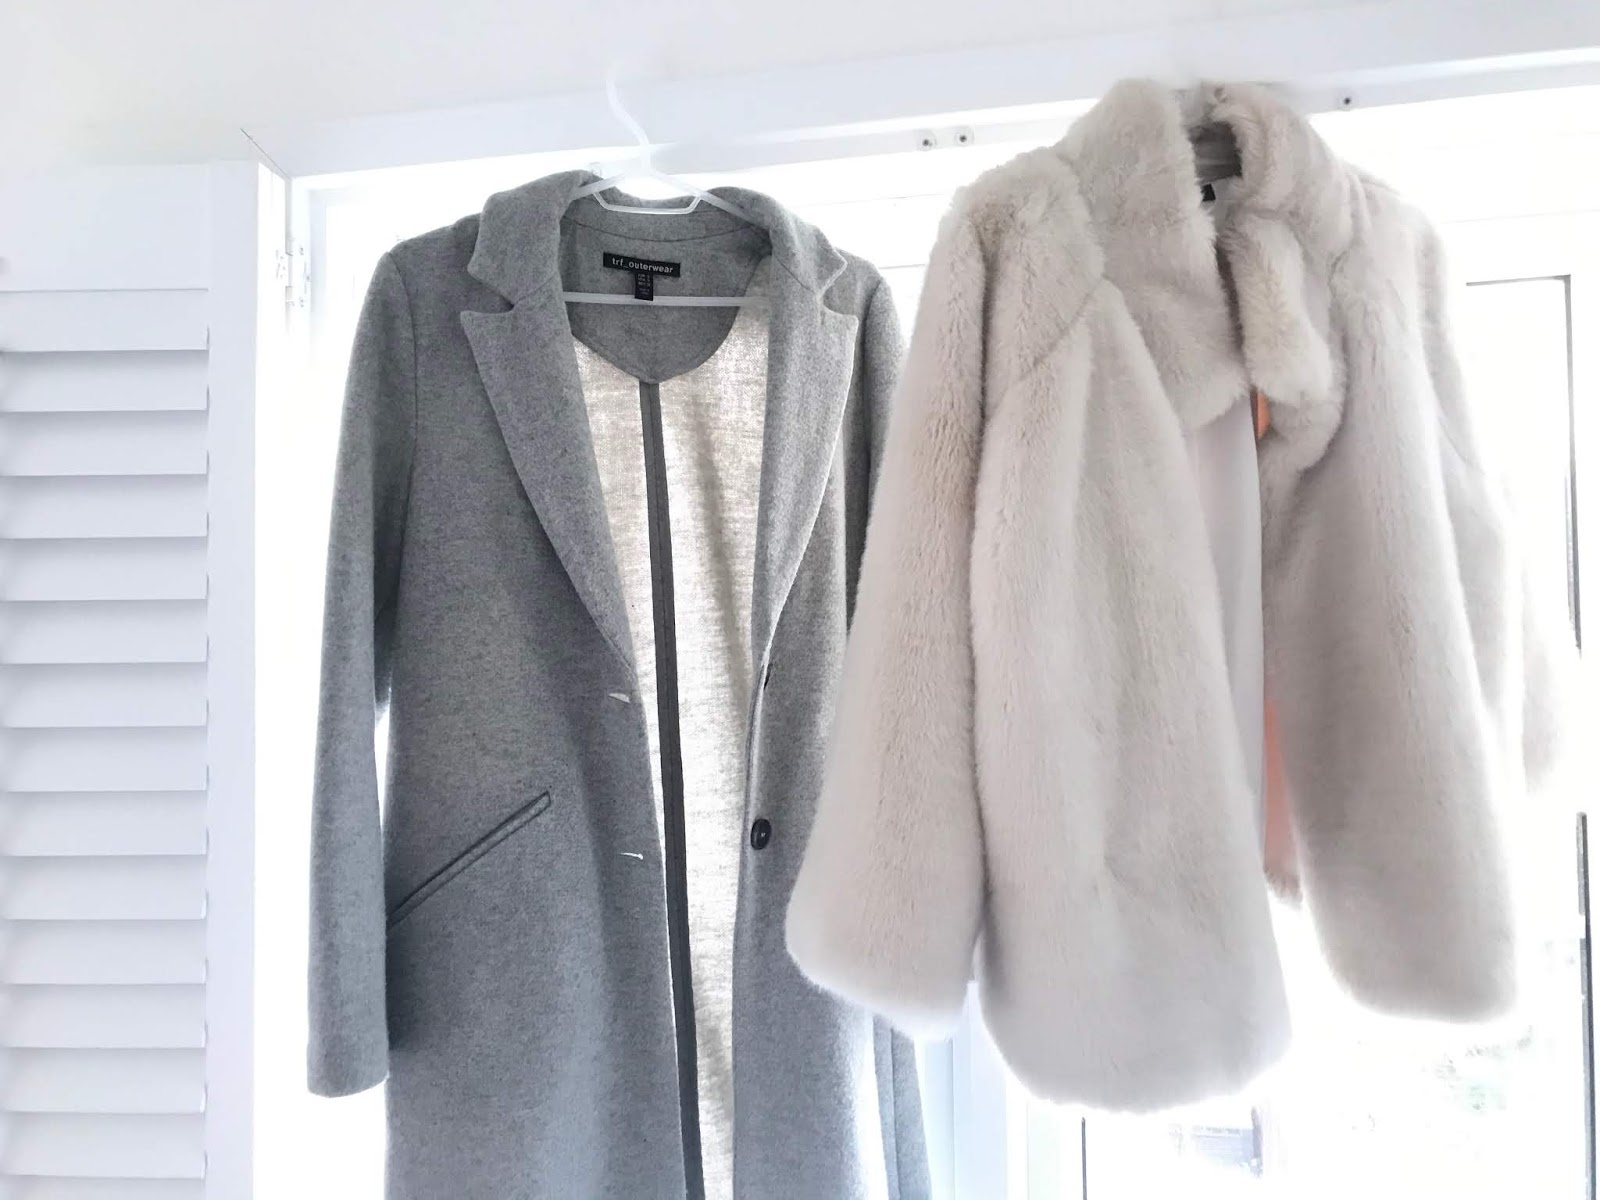 Warmer coat options for spring evenings